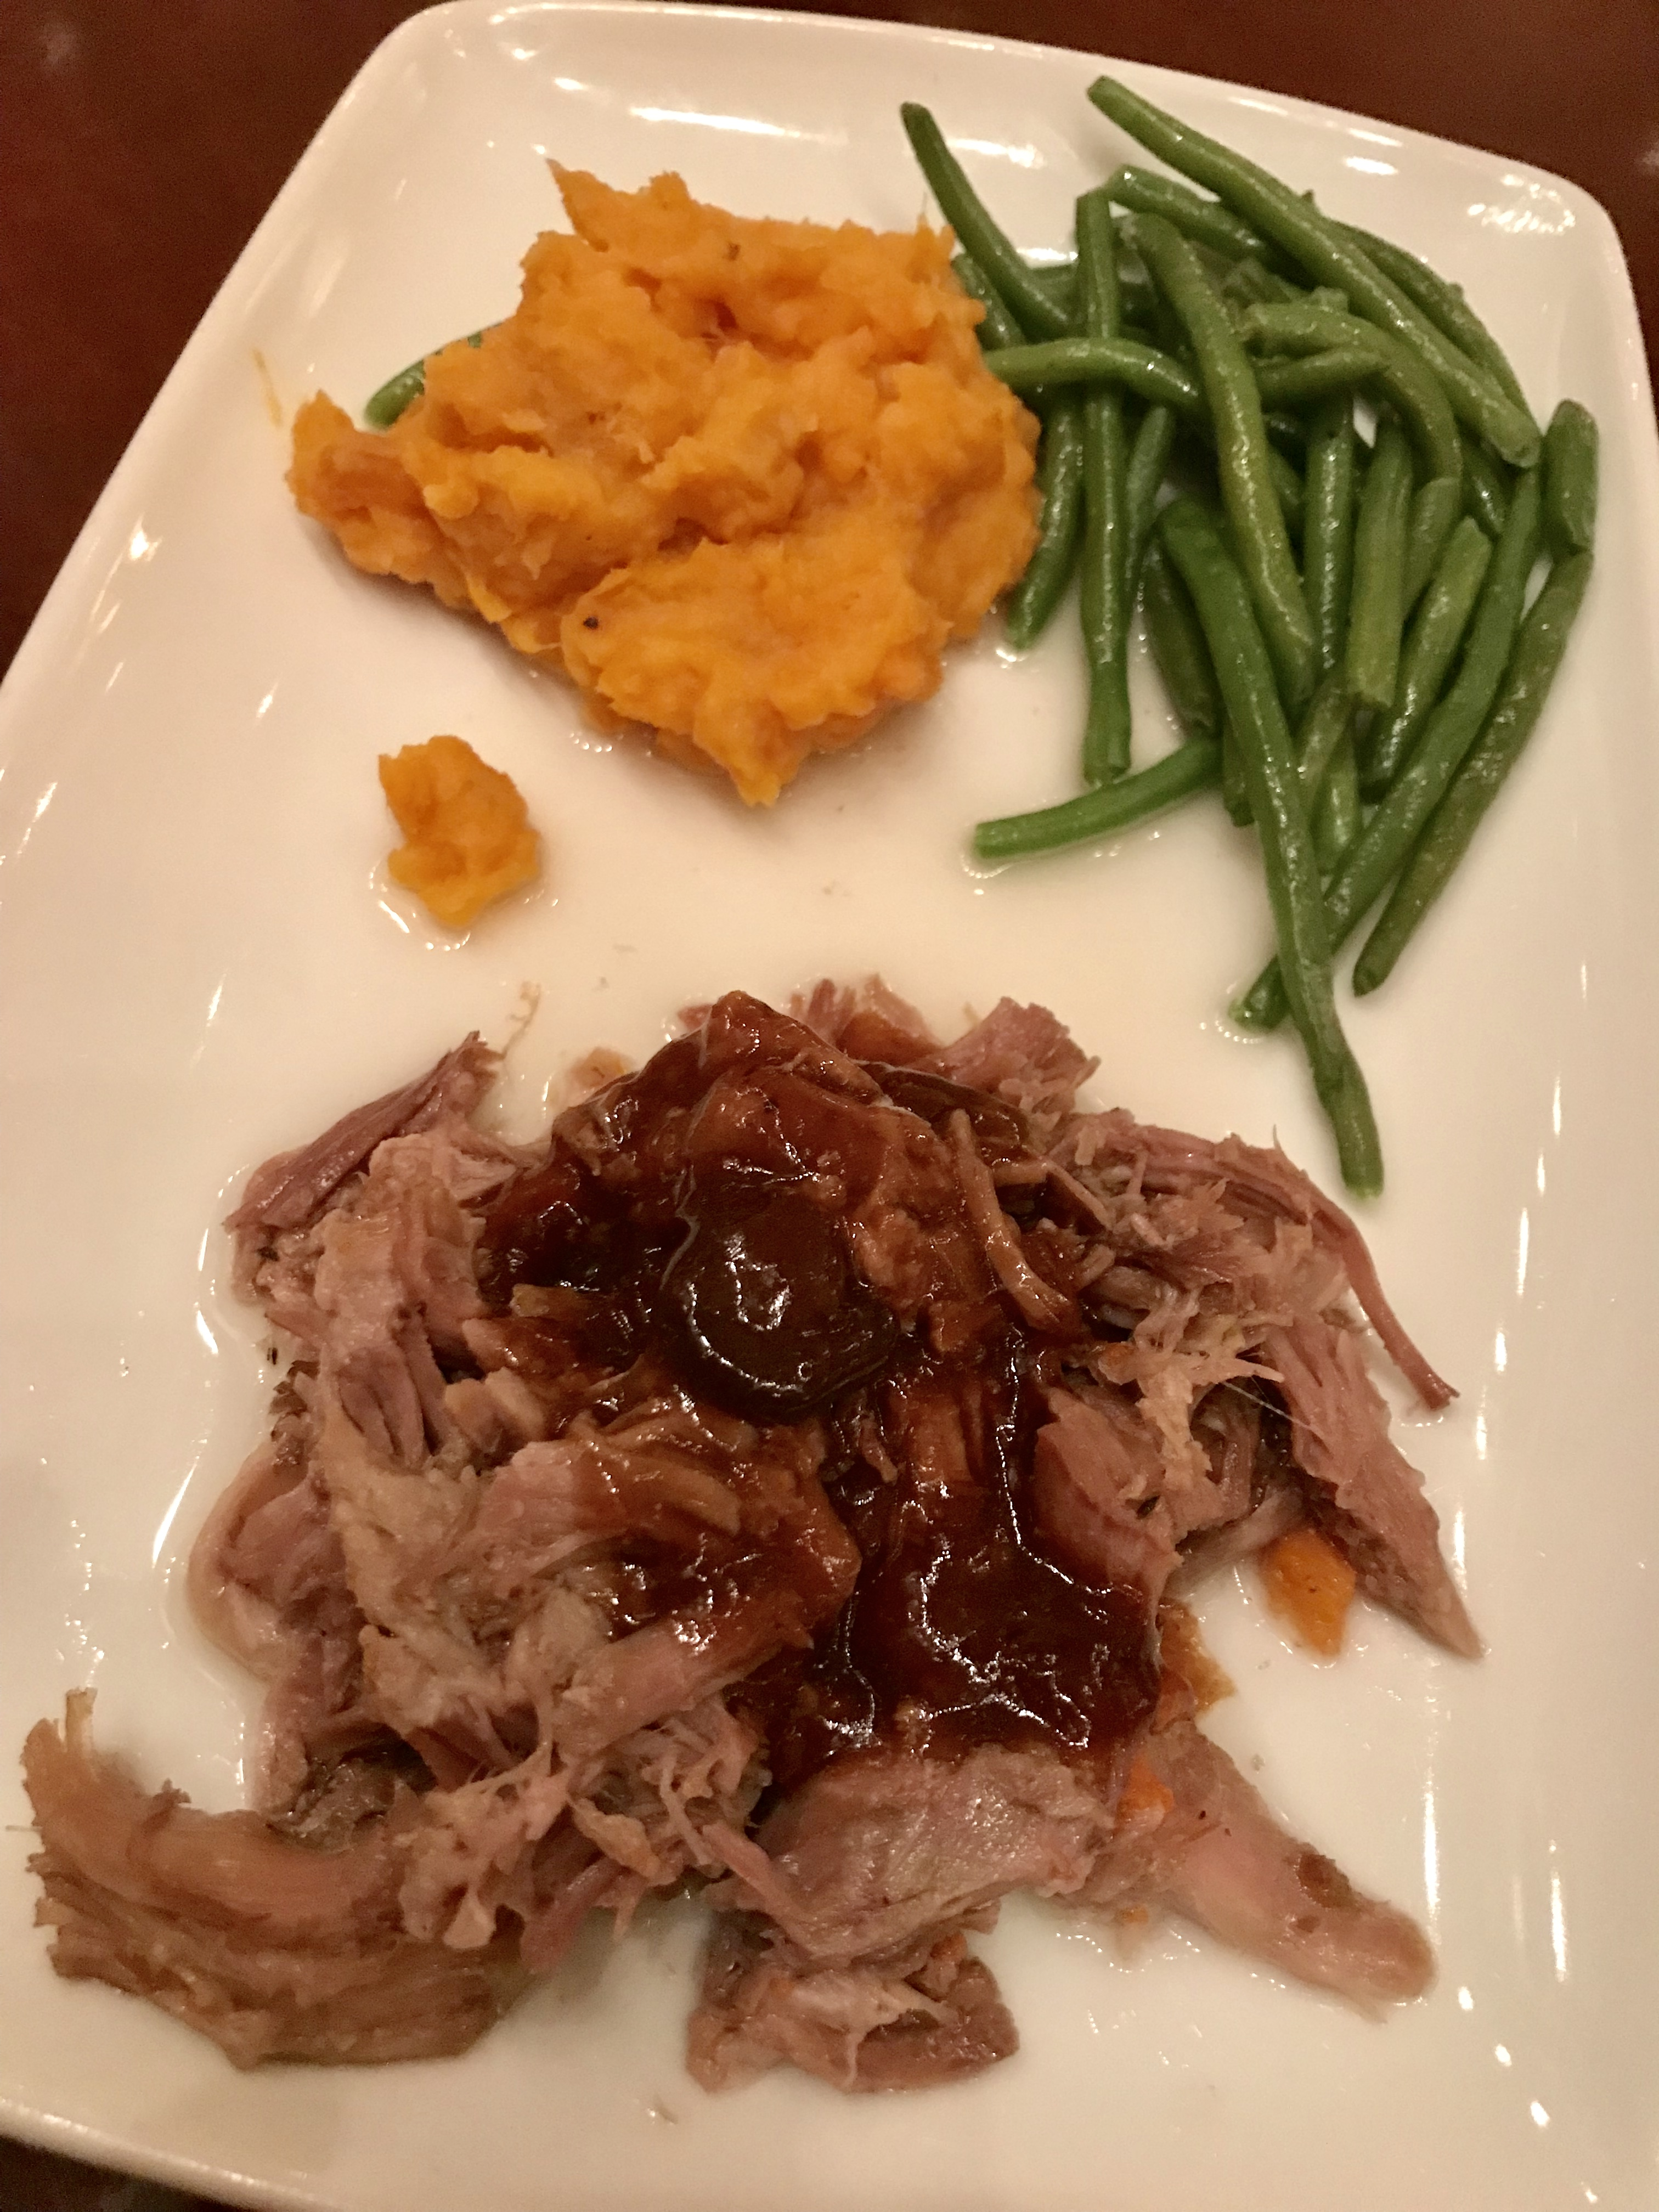 kid's portion of the braised pork meal